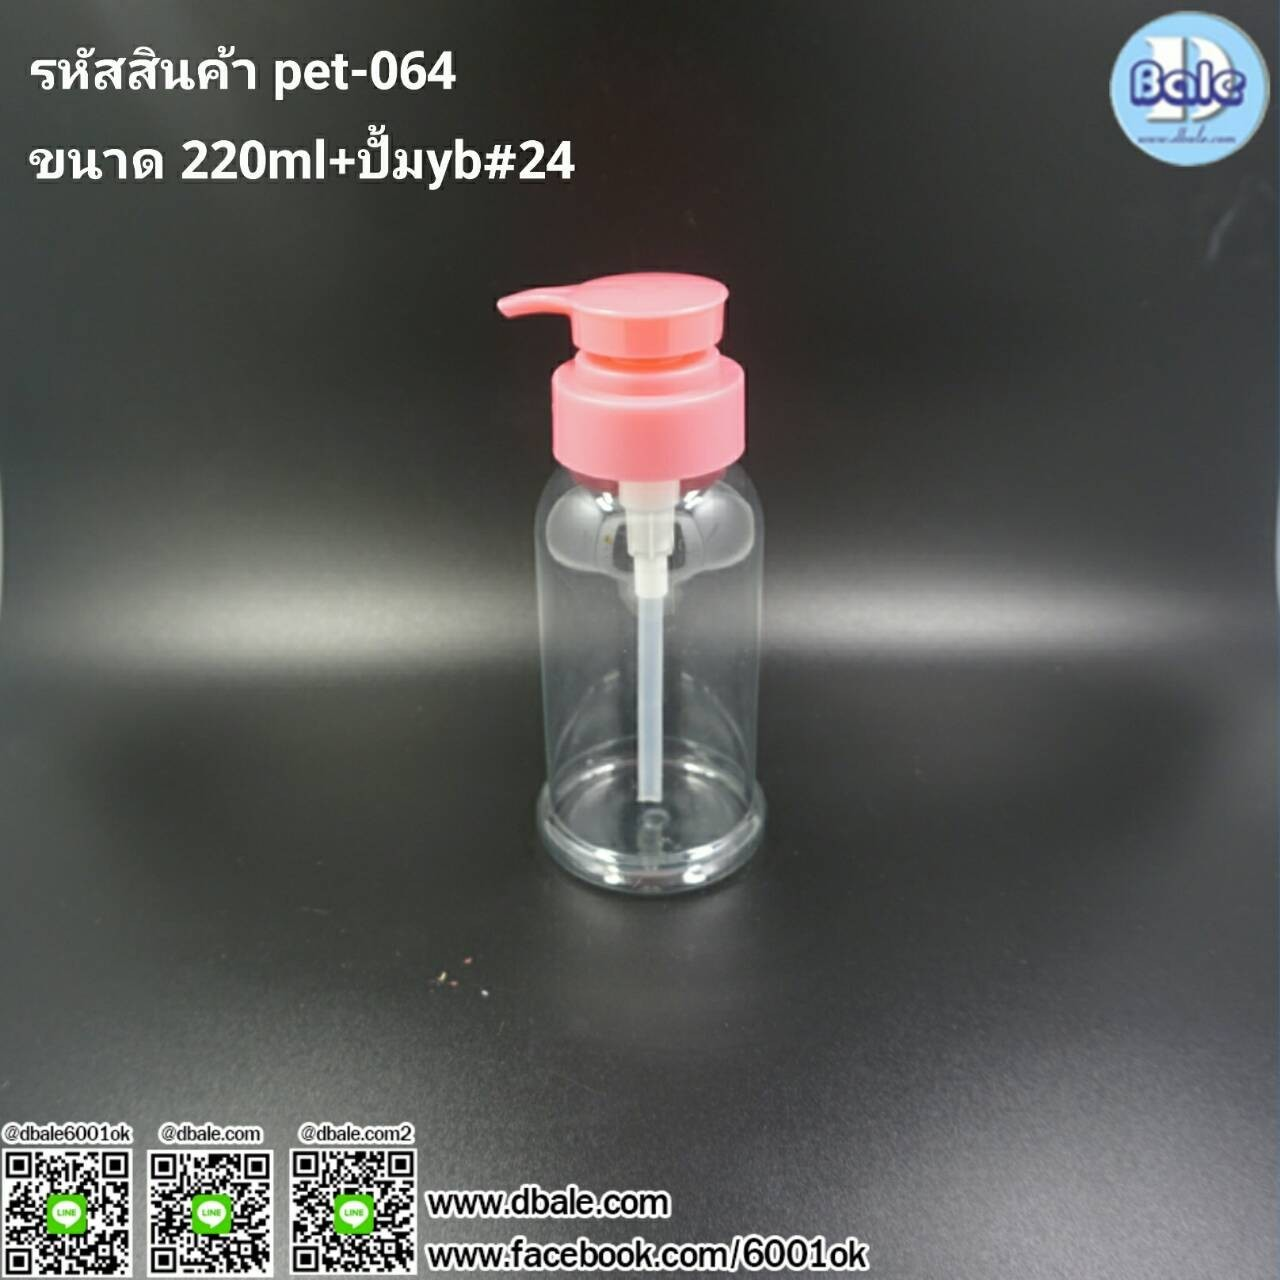 pet-064 220ml ใส#24 + ปั้ม yb bottle pump cream lotion jel